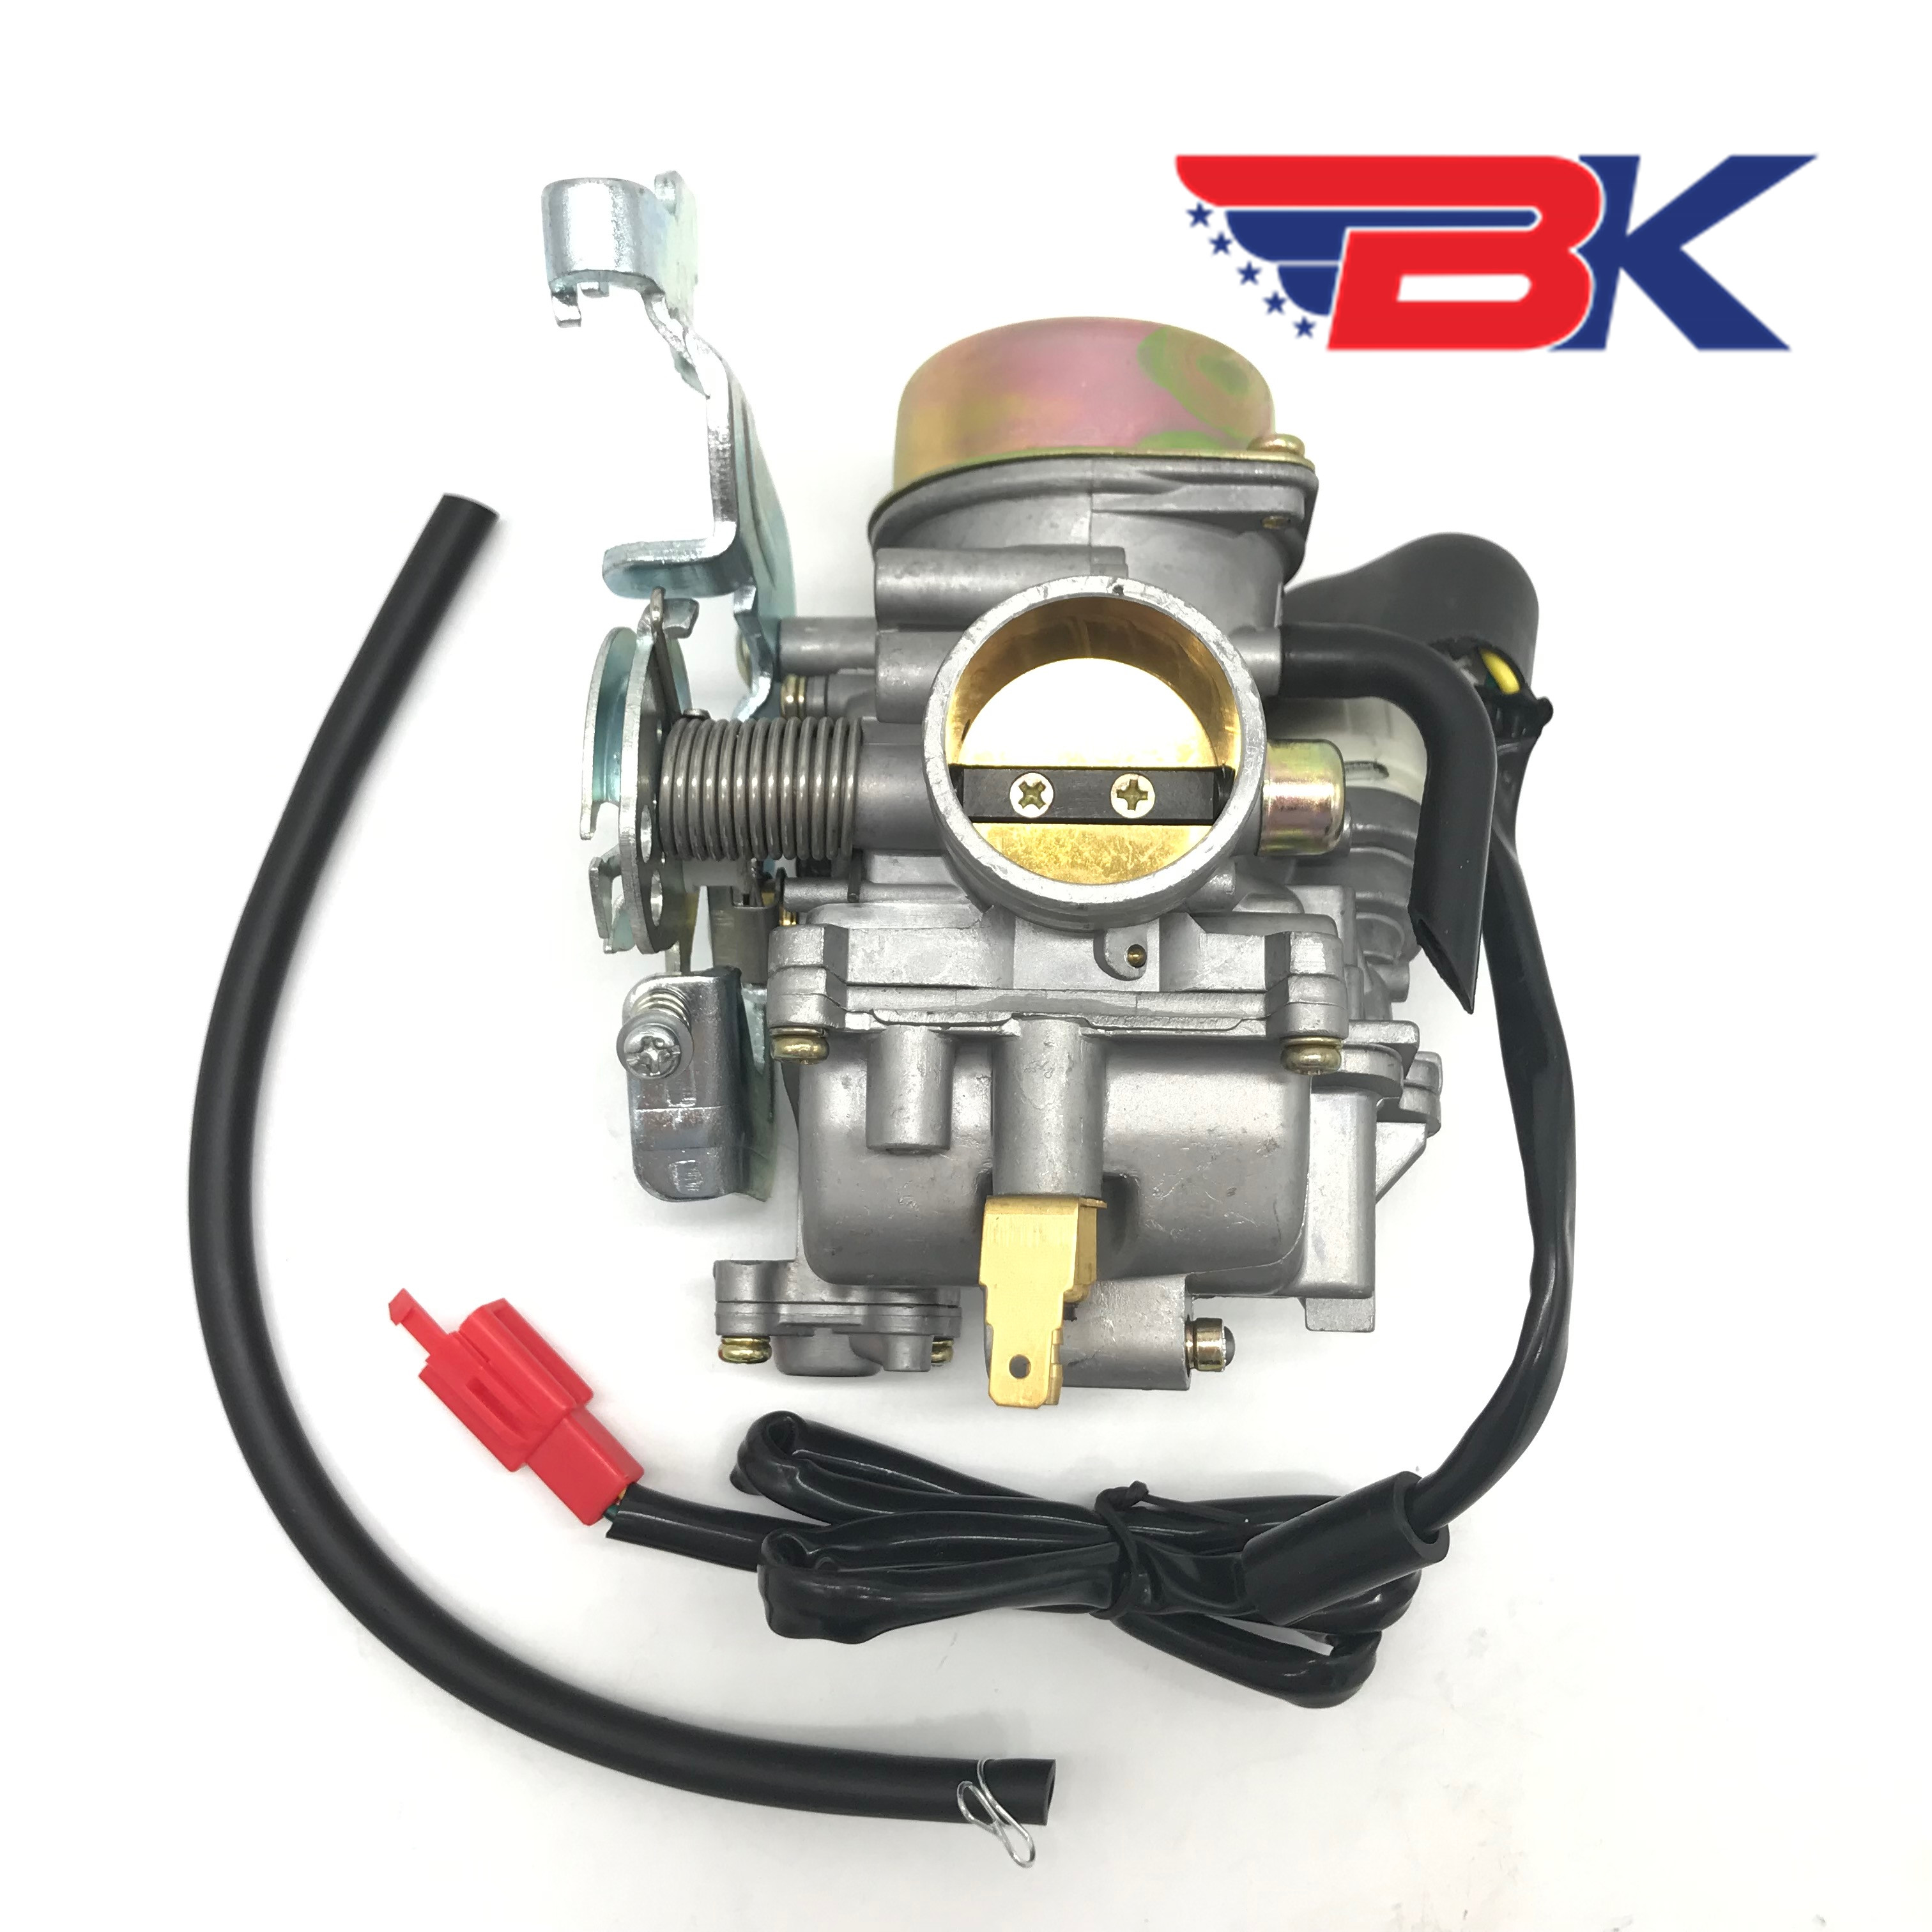 Buyang 300CC BY 300 30mm Carburetor Carb ATV Quad D300 <font><b>G300</b></font> Engine Parts No 2.8.01.0001 image